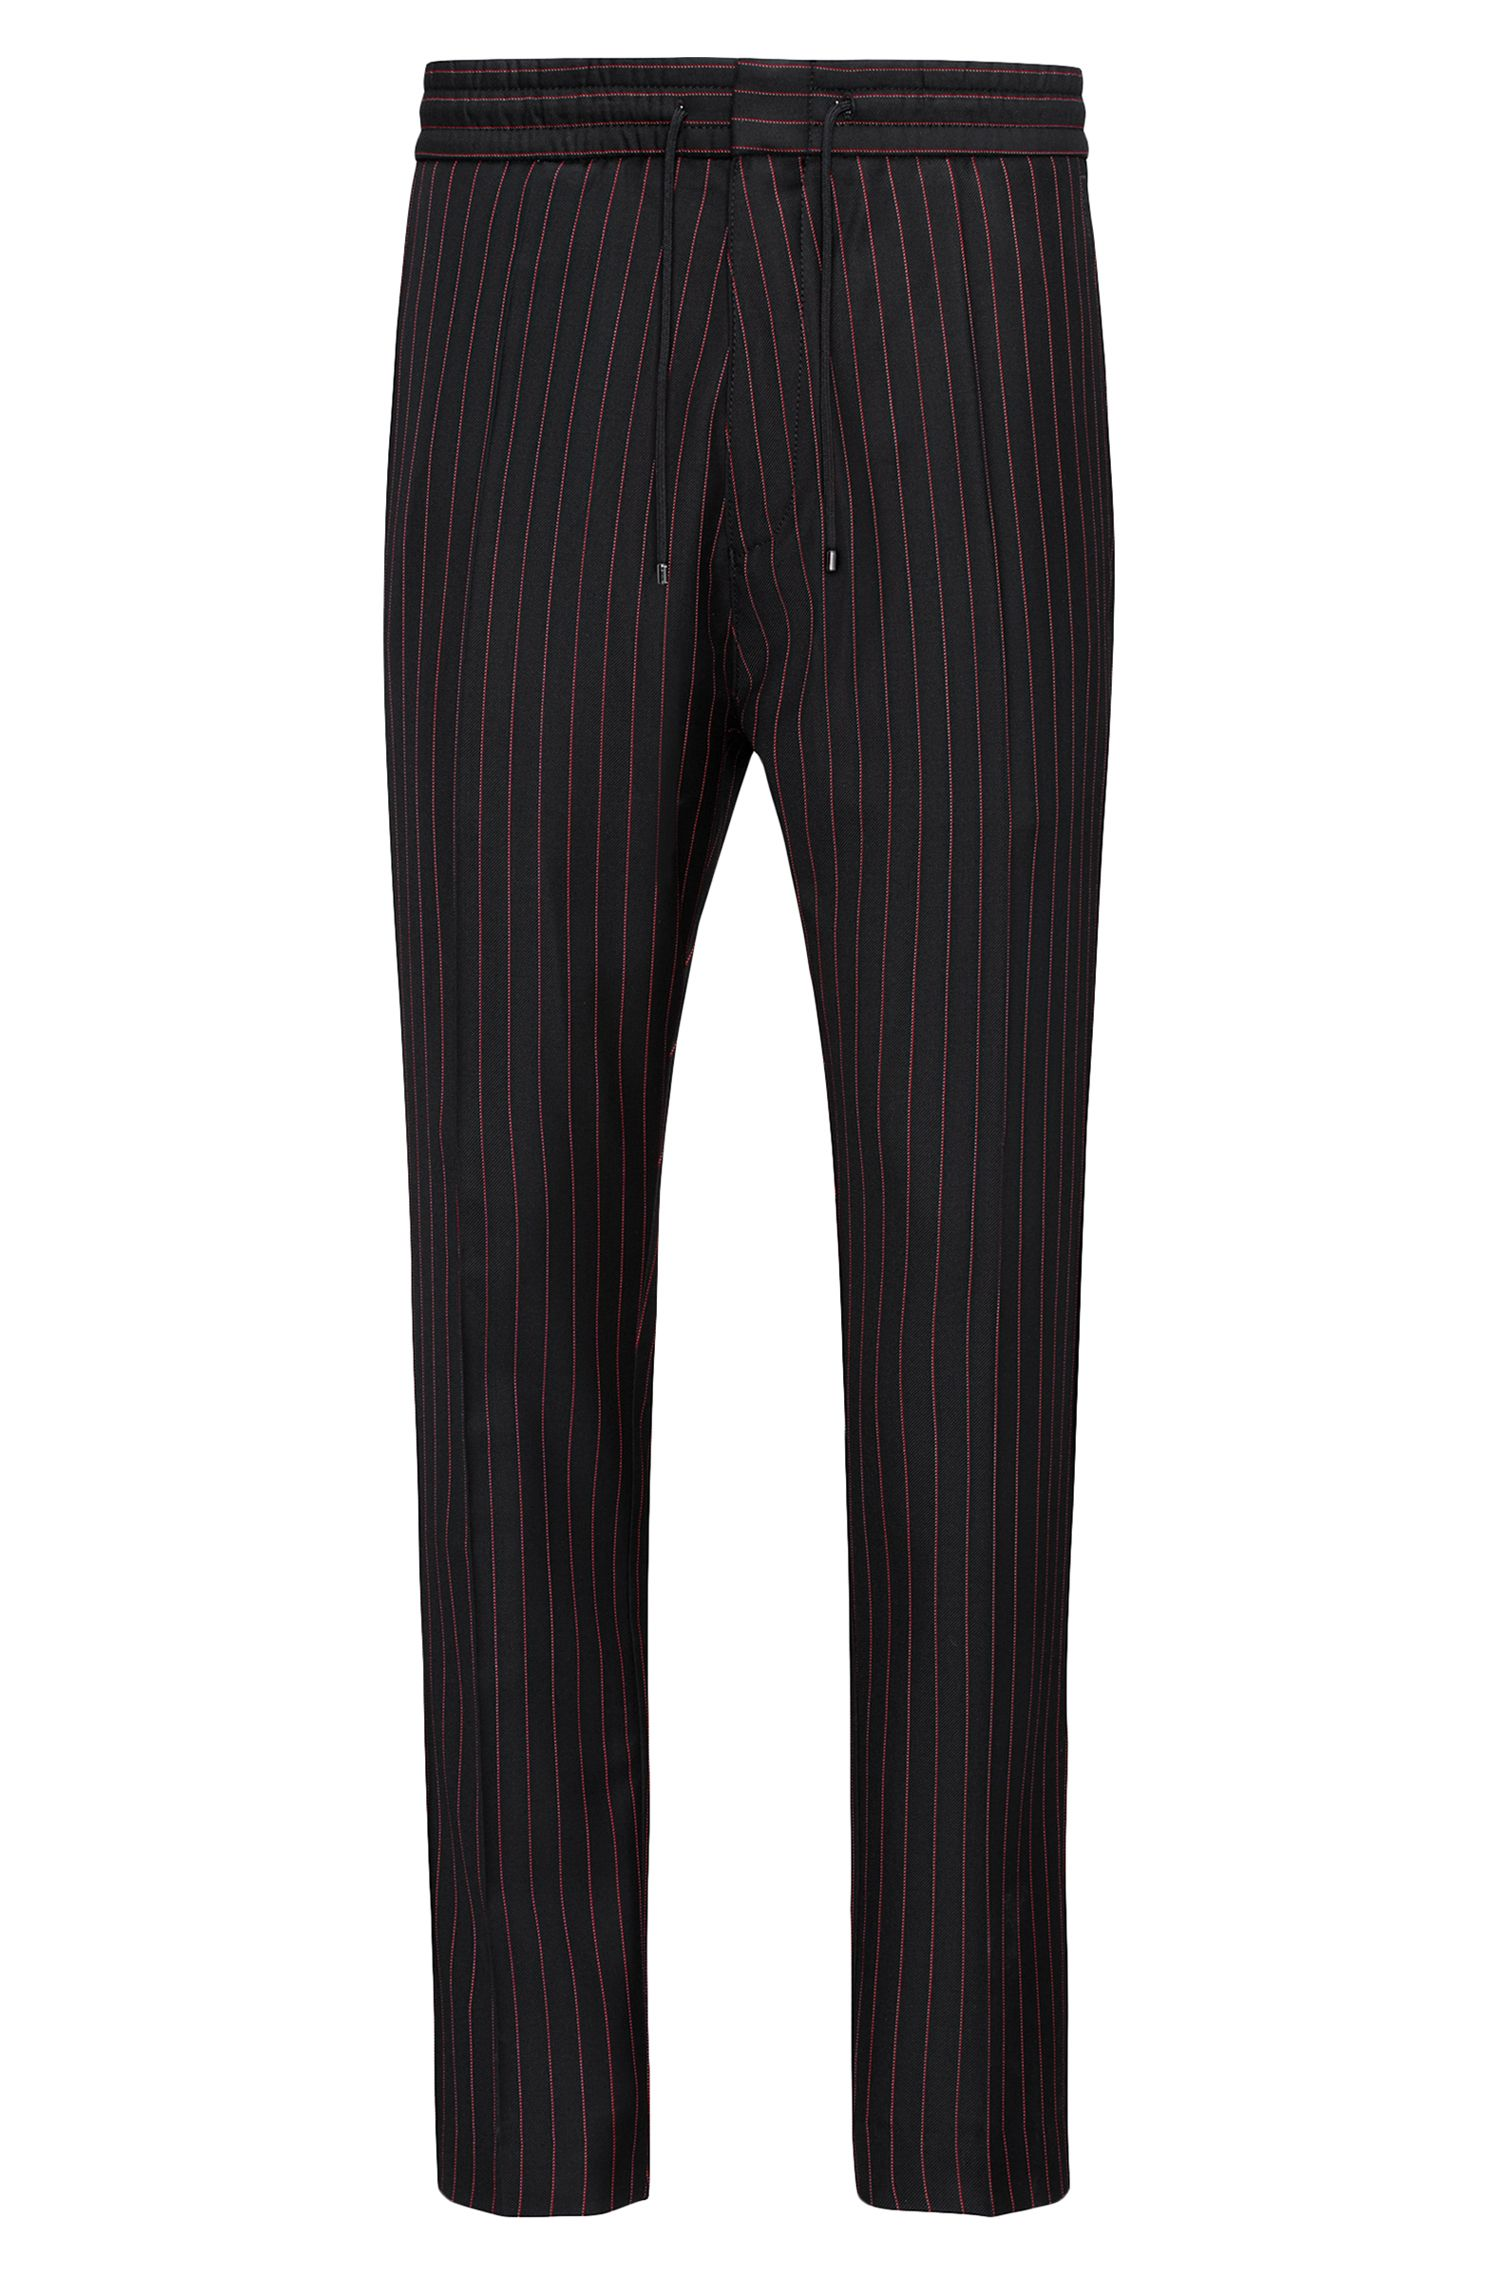 Pinstriped Virgin Wool Pant, Tapered Fit | Himesh